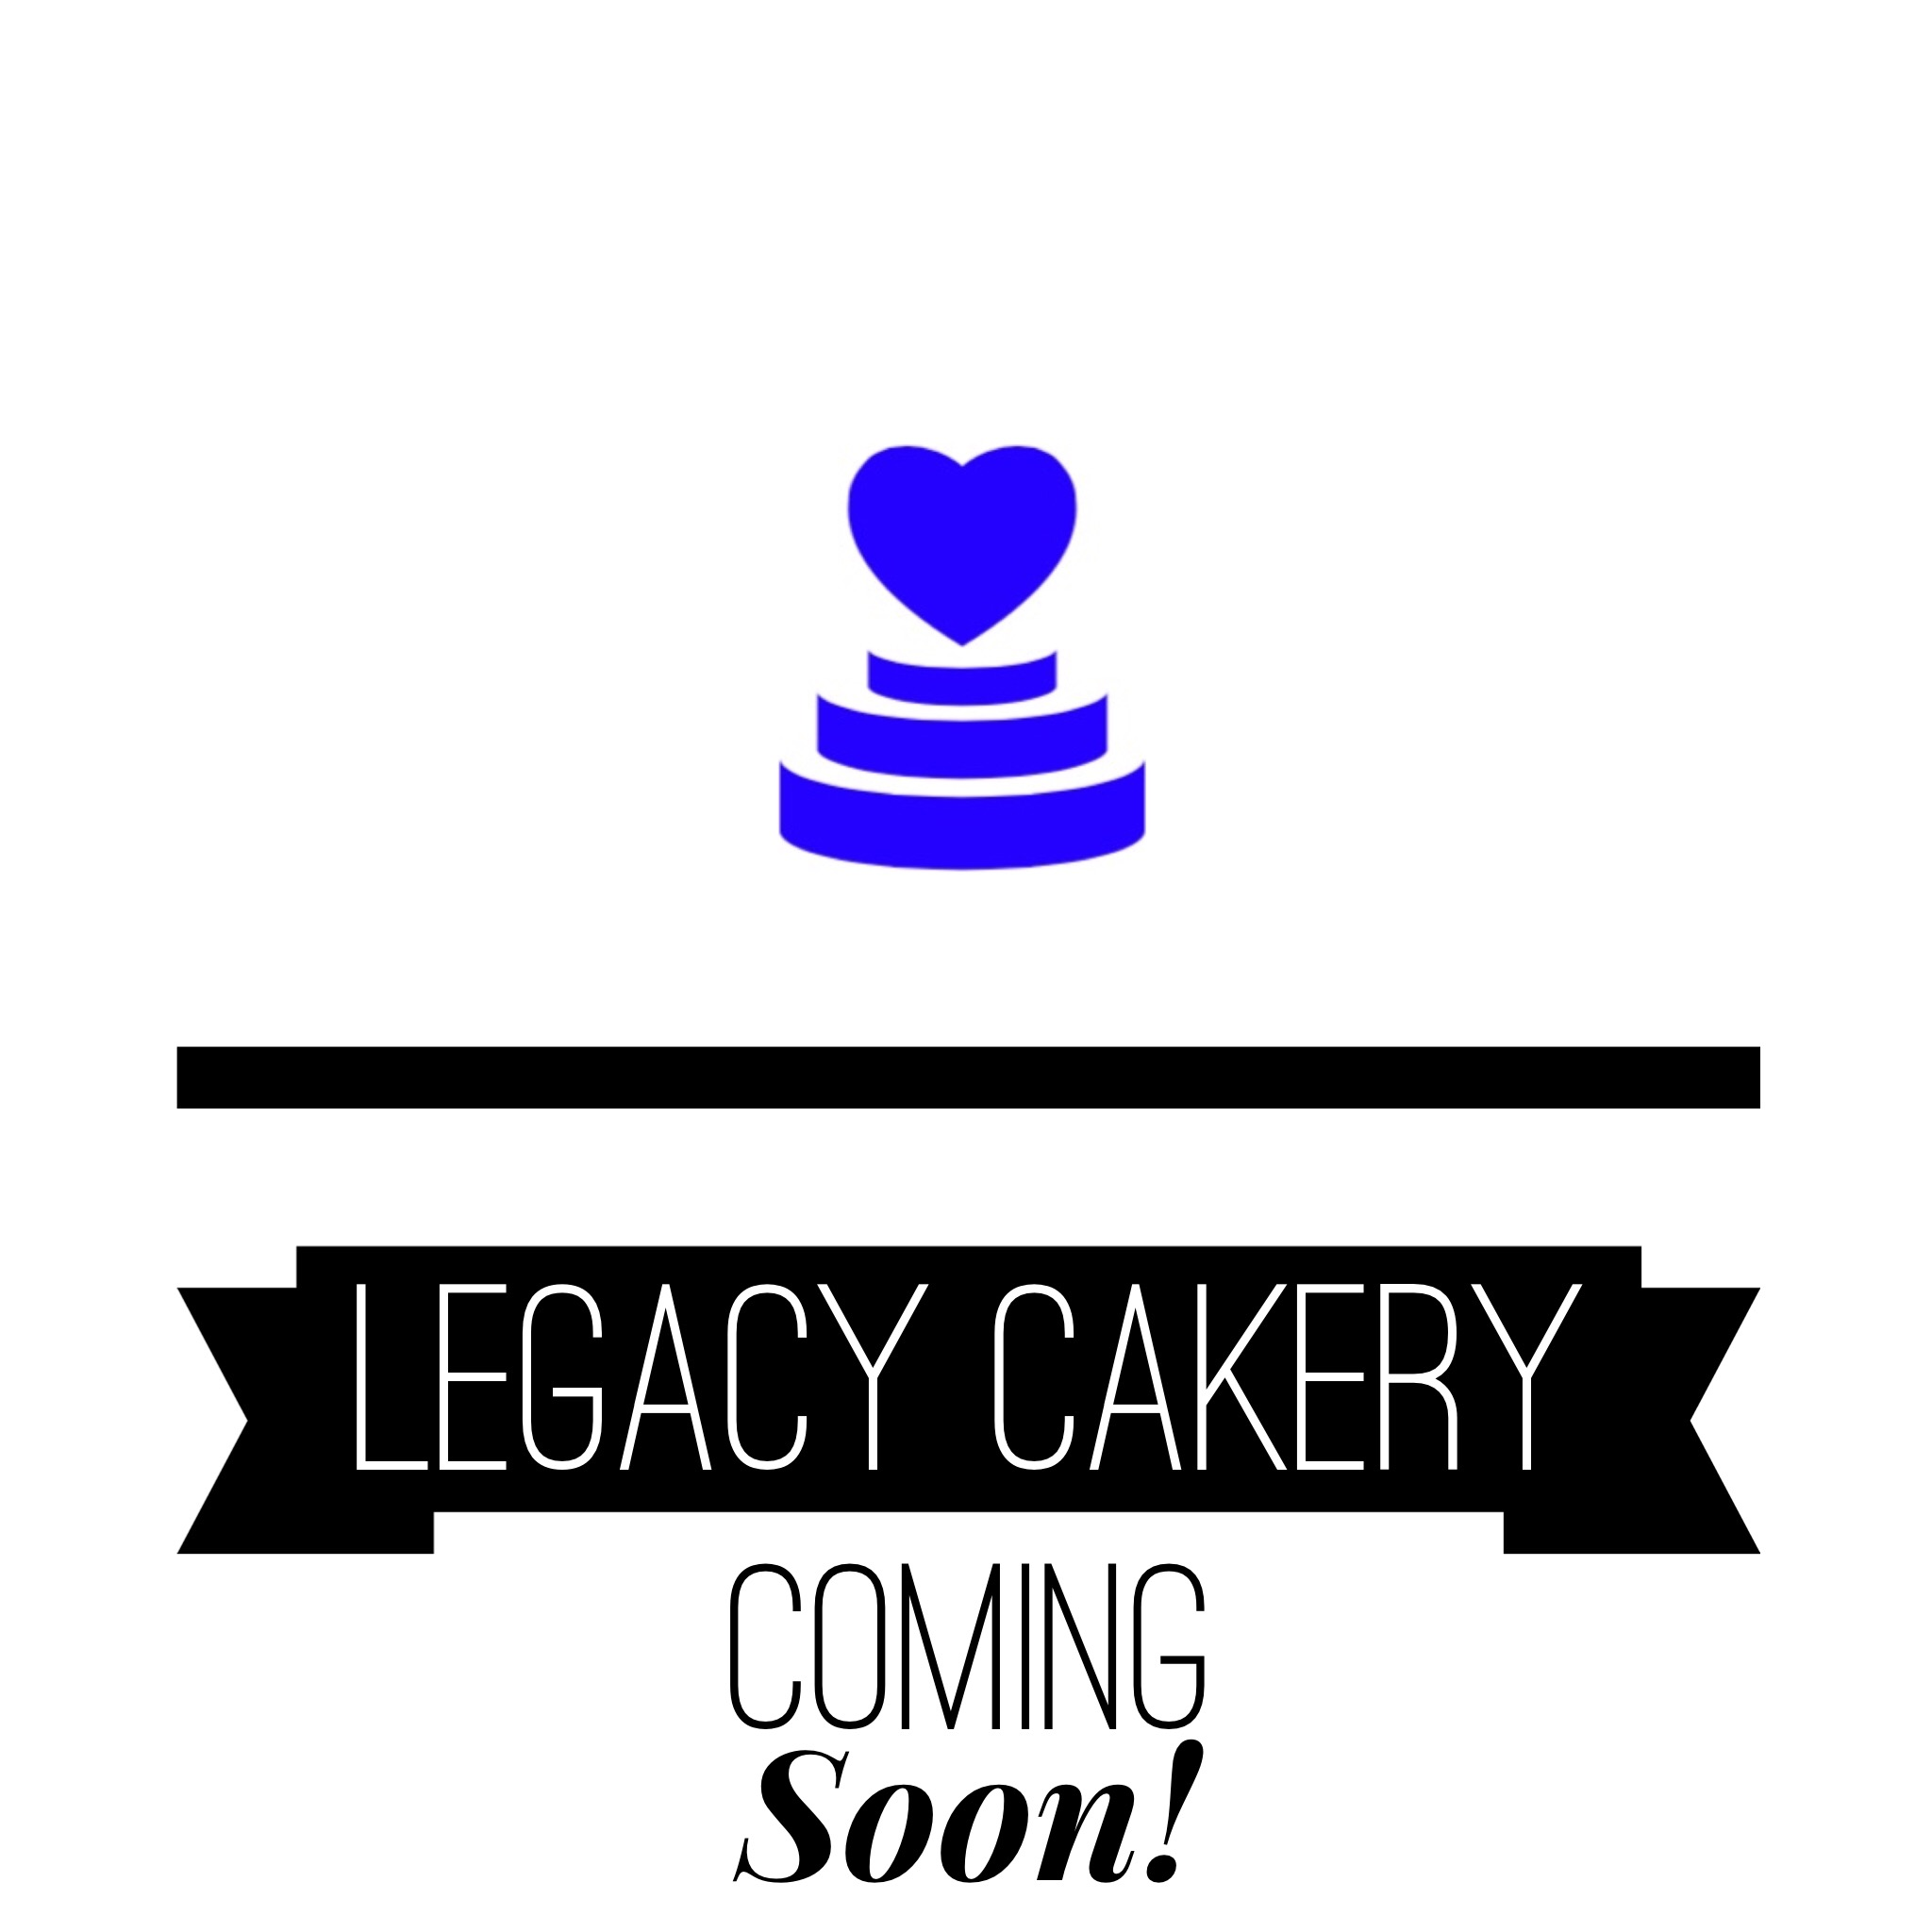 LEGACY-CAKERY- Coming- Soon